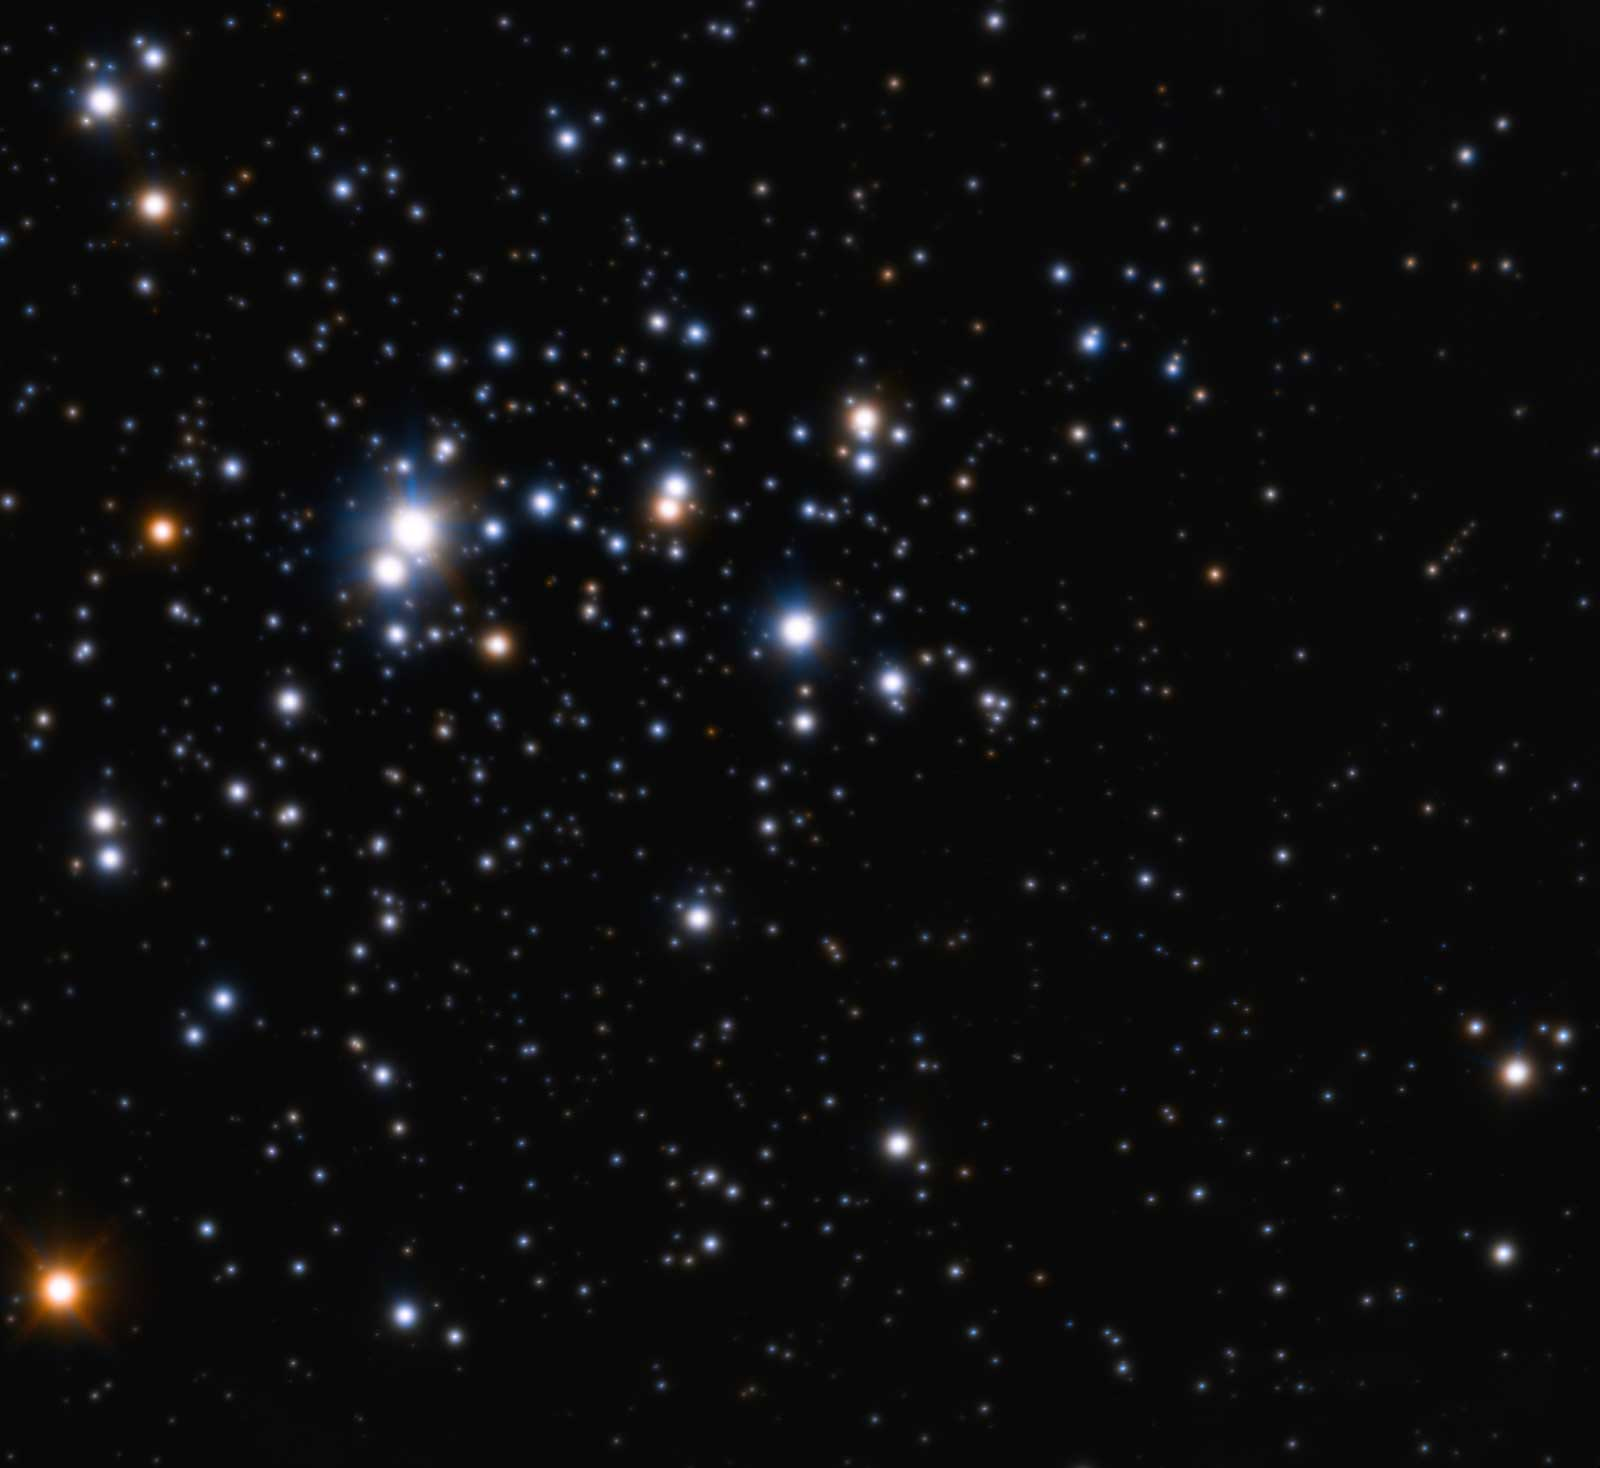 Open star cluster Trumpler 14, a cluster with more than two thousand stars, similar to the one where the Sun was born. Credit: ESO/H. Sana